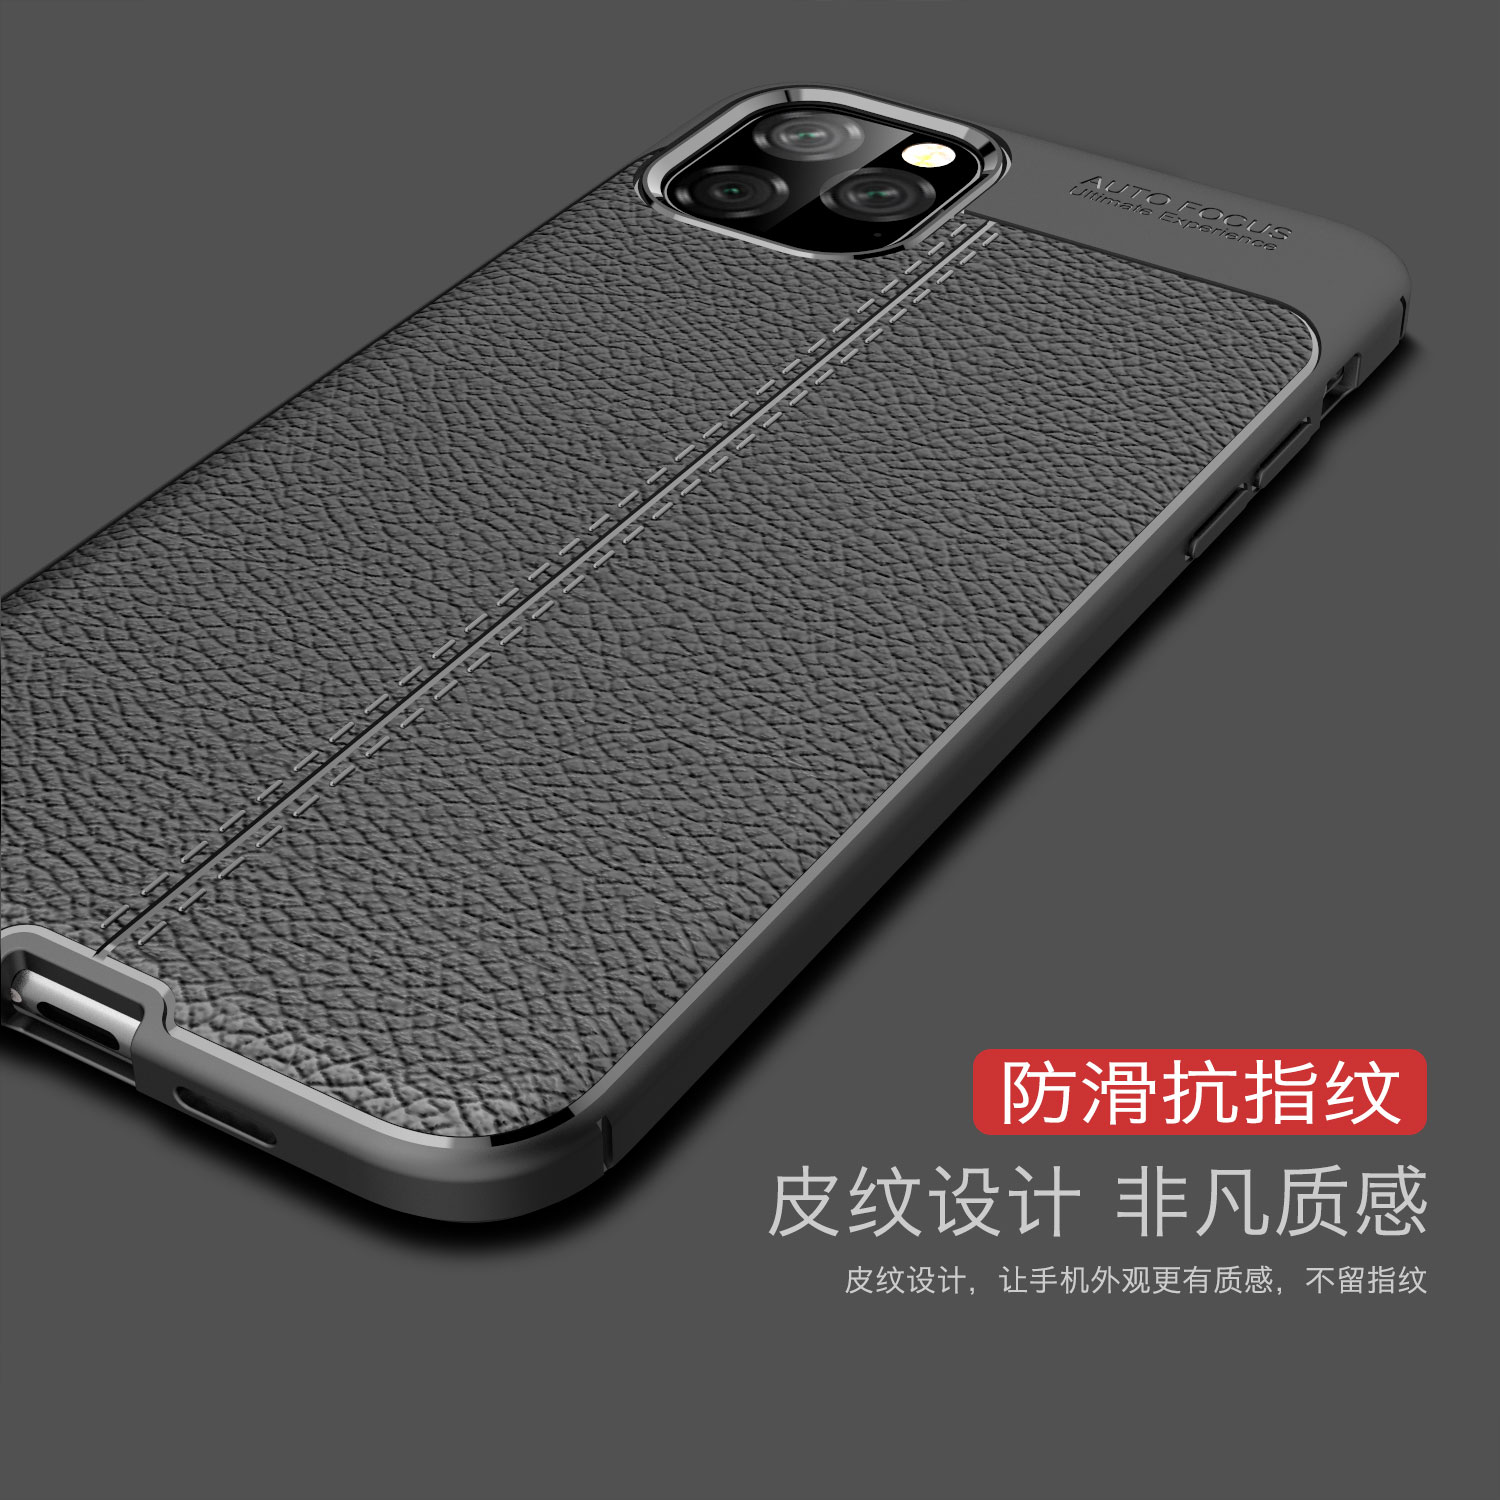 Ha8a8ca07baad45348ac1aec25a5f5192i For iPhone 11 Pro Max Case 7 8 5S 6S Plus XR XS SE Apple Case Luxury Leather PU Soft Silicone Phone Back Cover For iPhone 11 Pro